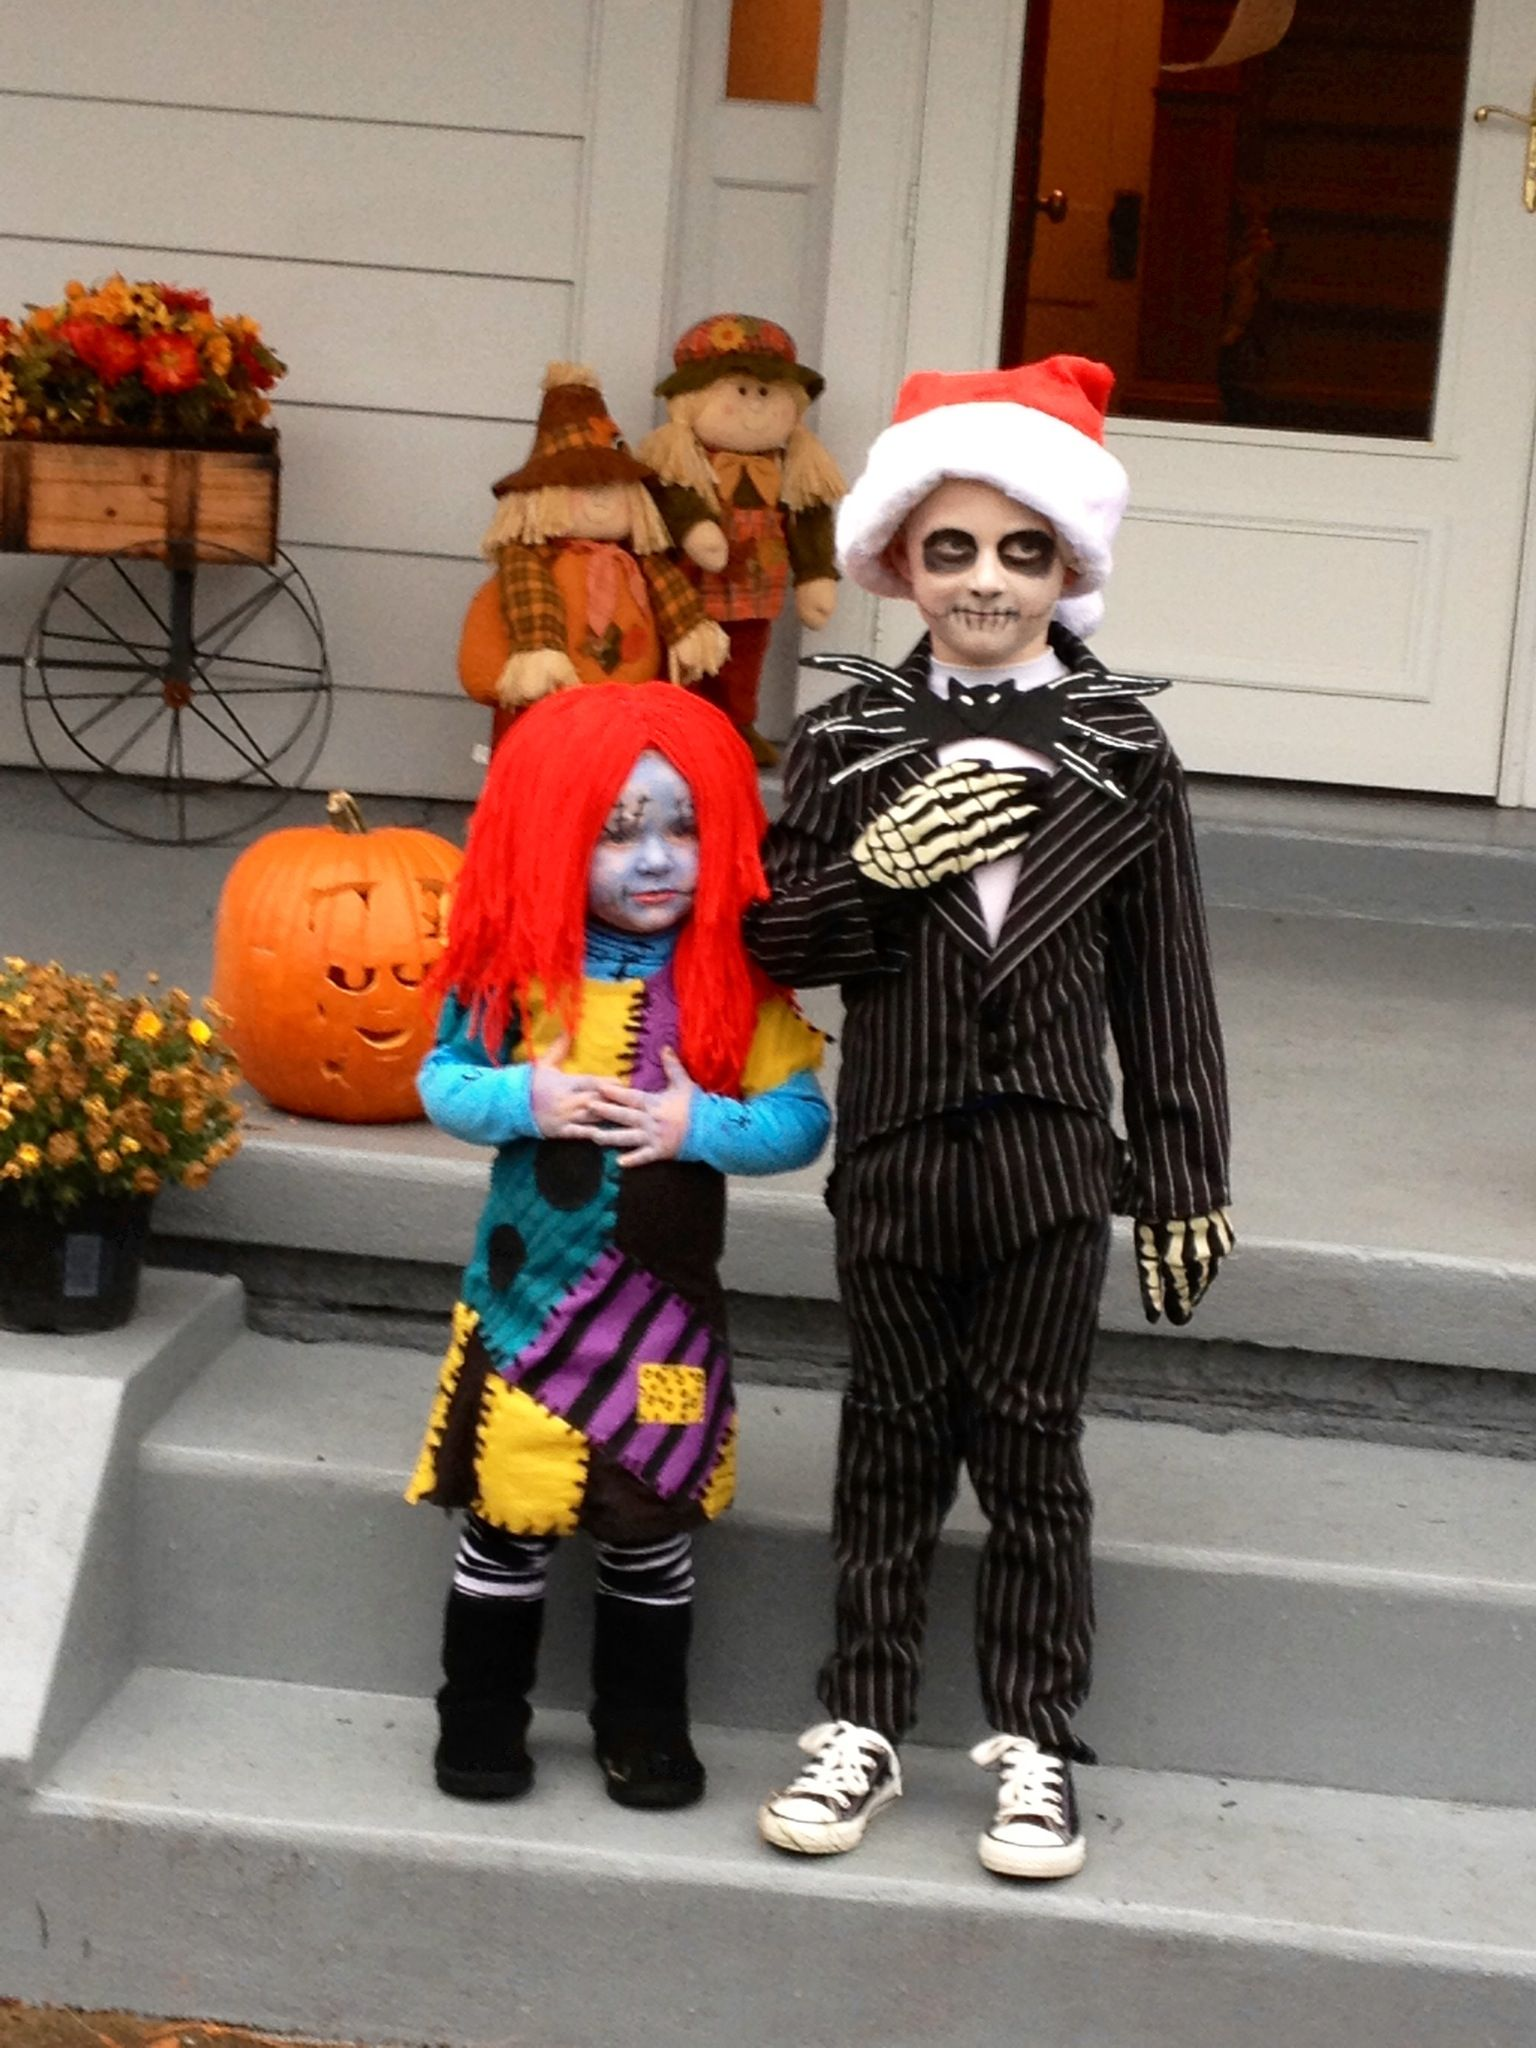 diy jack skellington and sally stitches costumes from nightmare